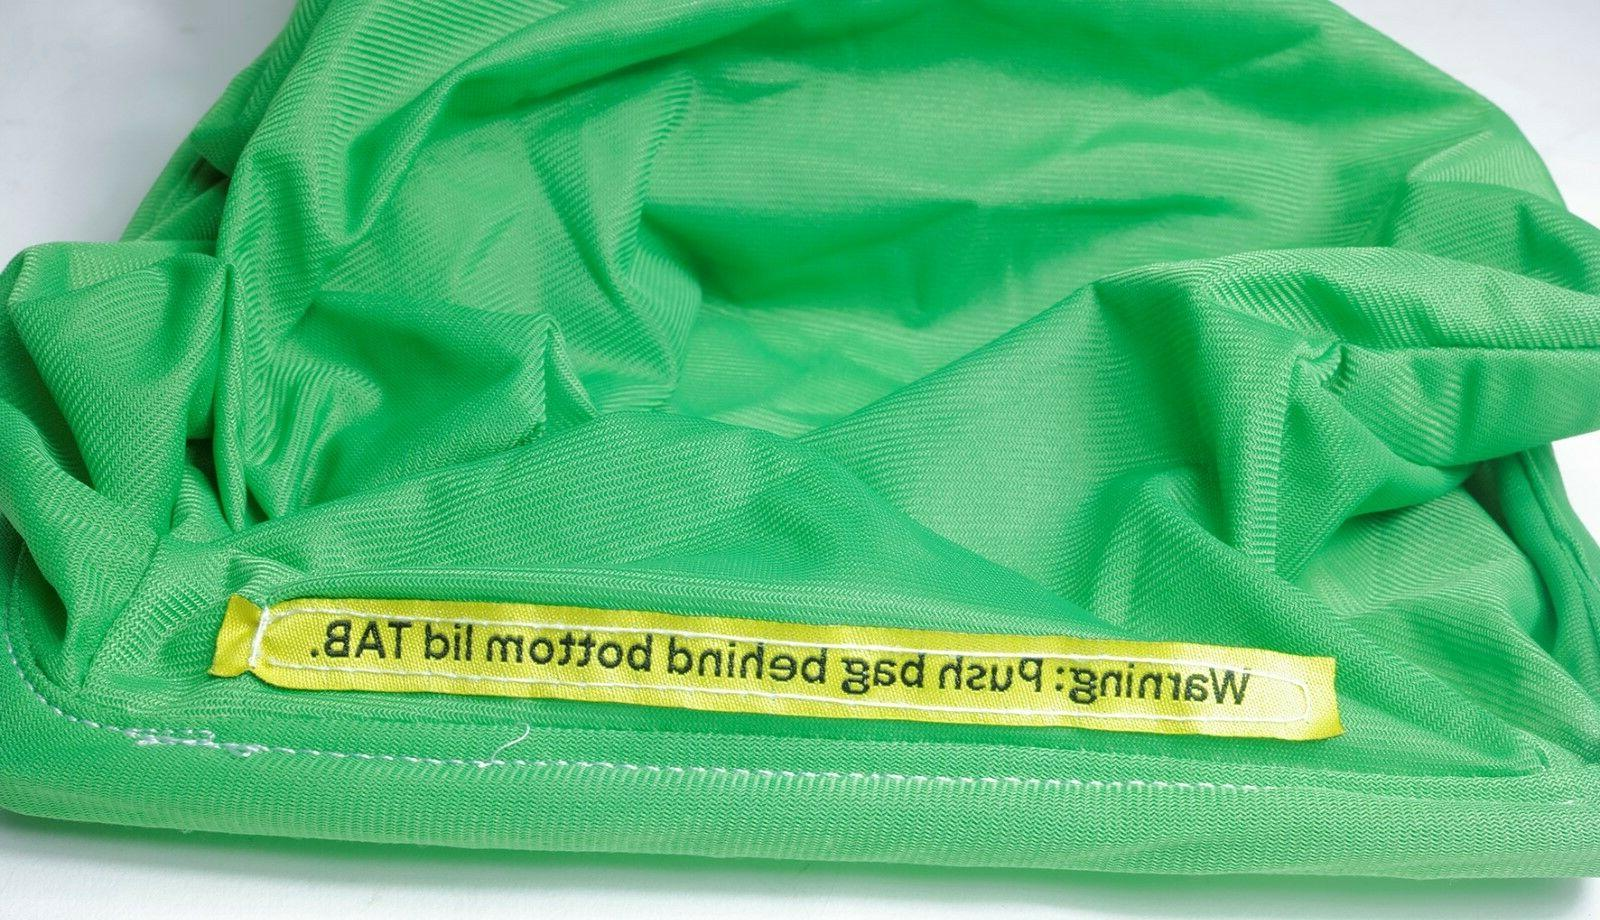 NC1017 replacement bag for Smartkleen or Nitro NC2x/3x/5x